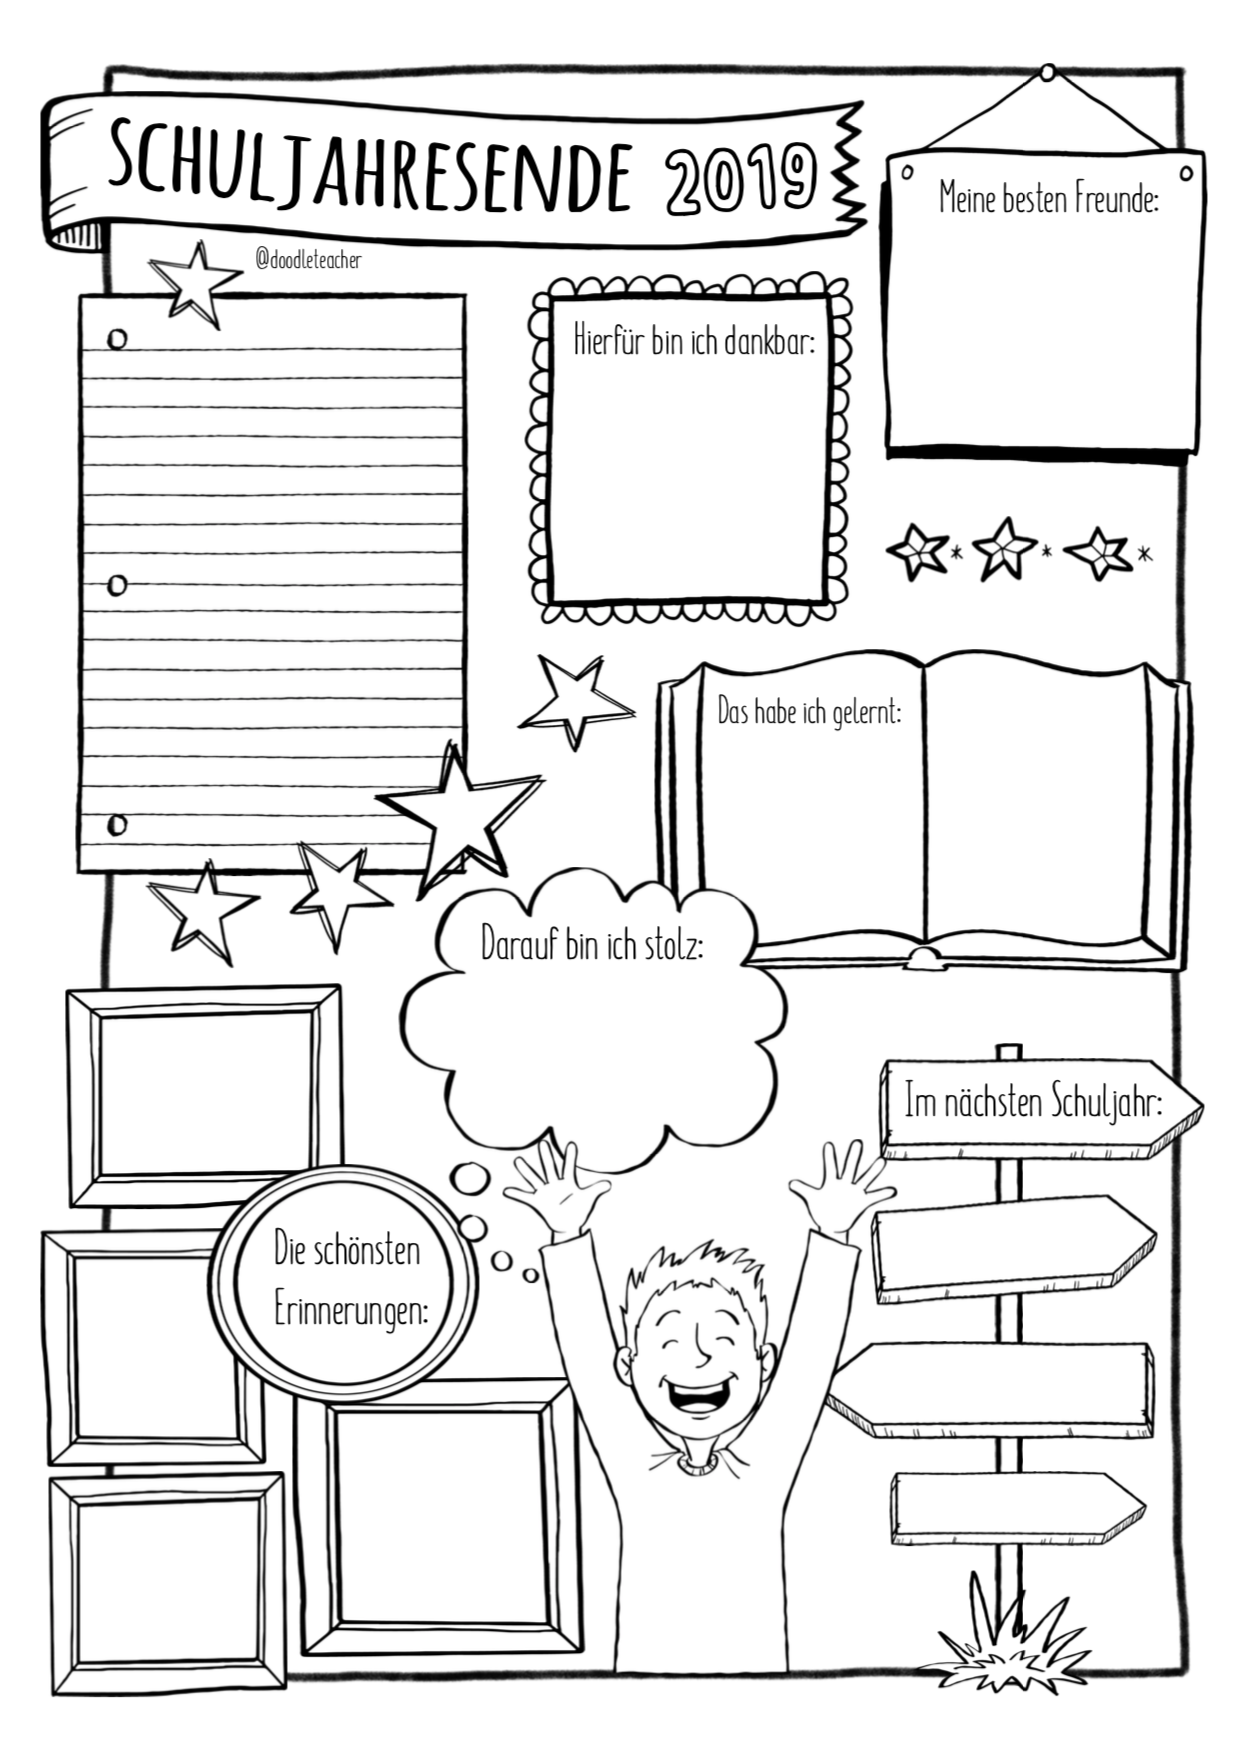 End Of School Year Free Sketch Note In 2020 End Of School Year Sketch Notes School Year